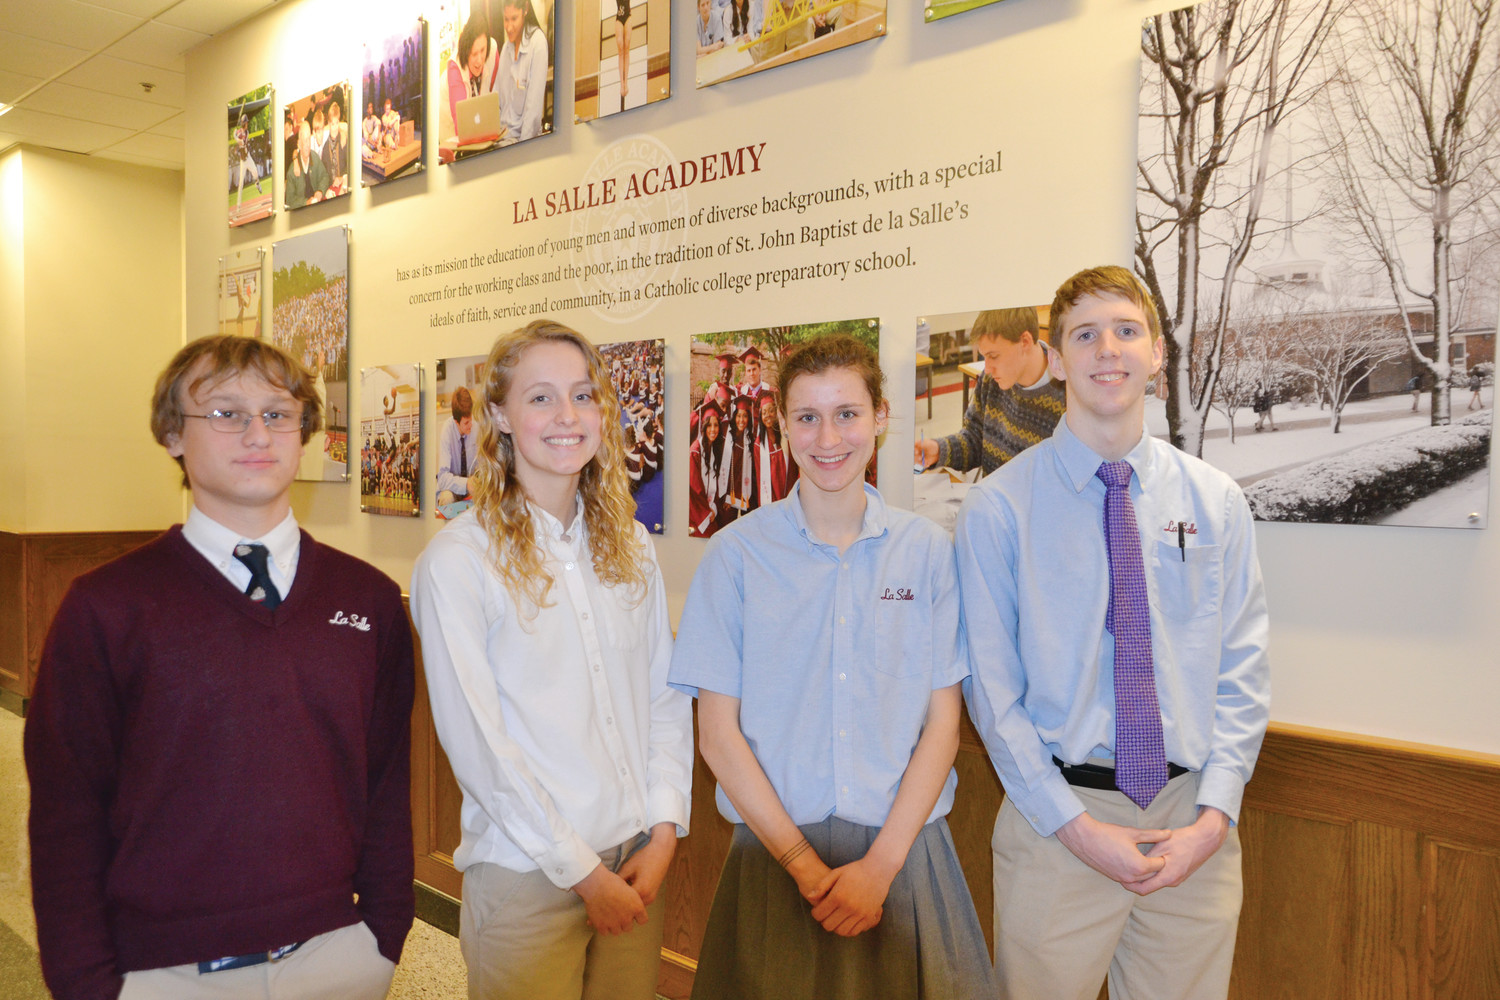 Pictured from left to right are James Linklater Truslow VI, Madalyn J. Redding, Grace T. Connolly, and Timothy J. Nigro.